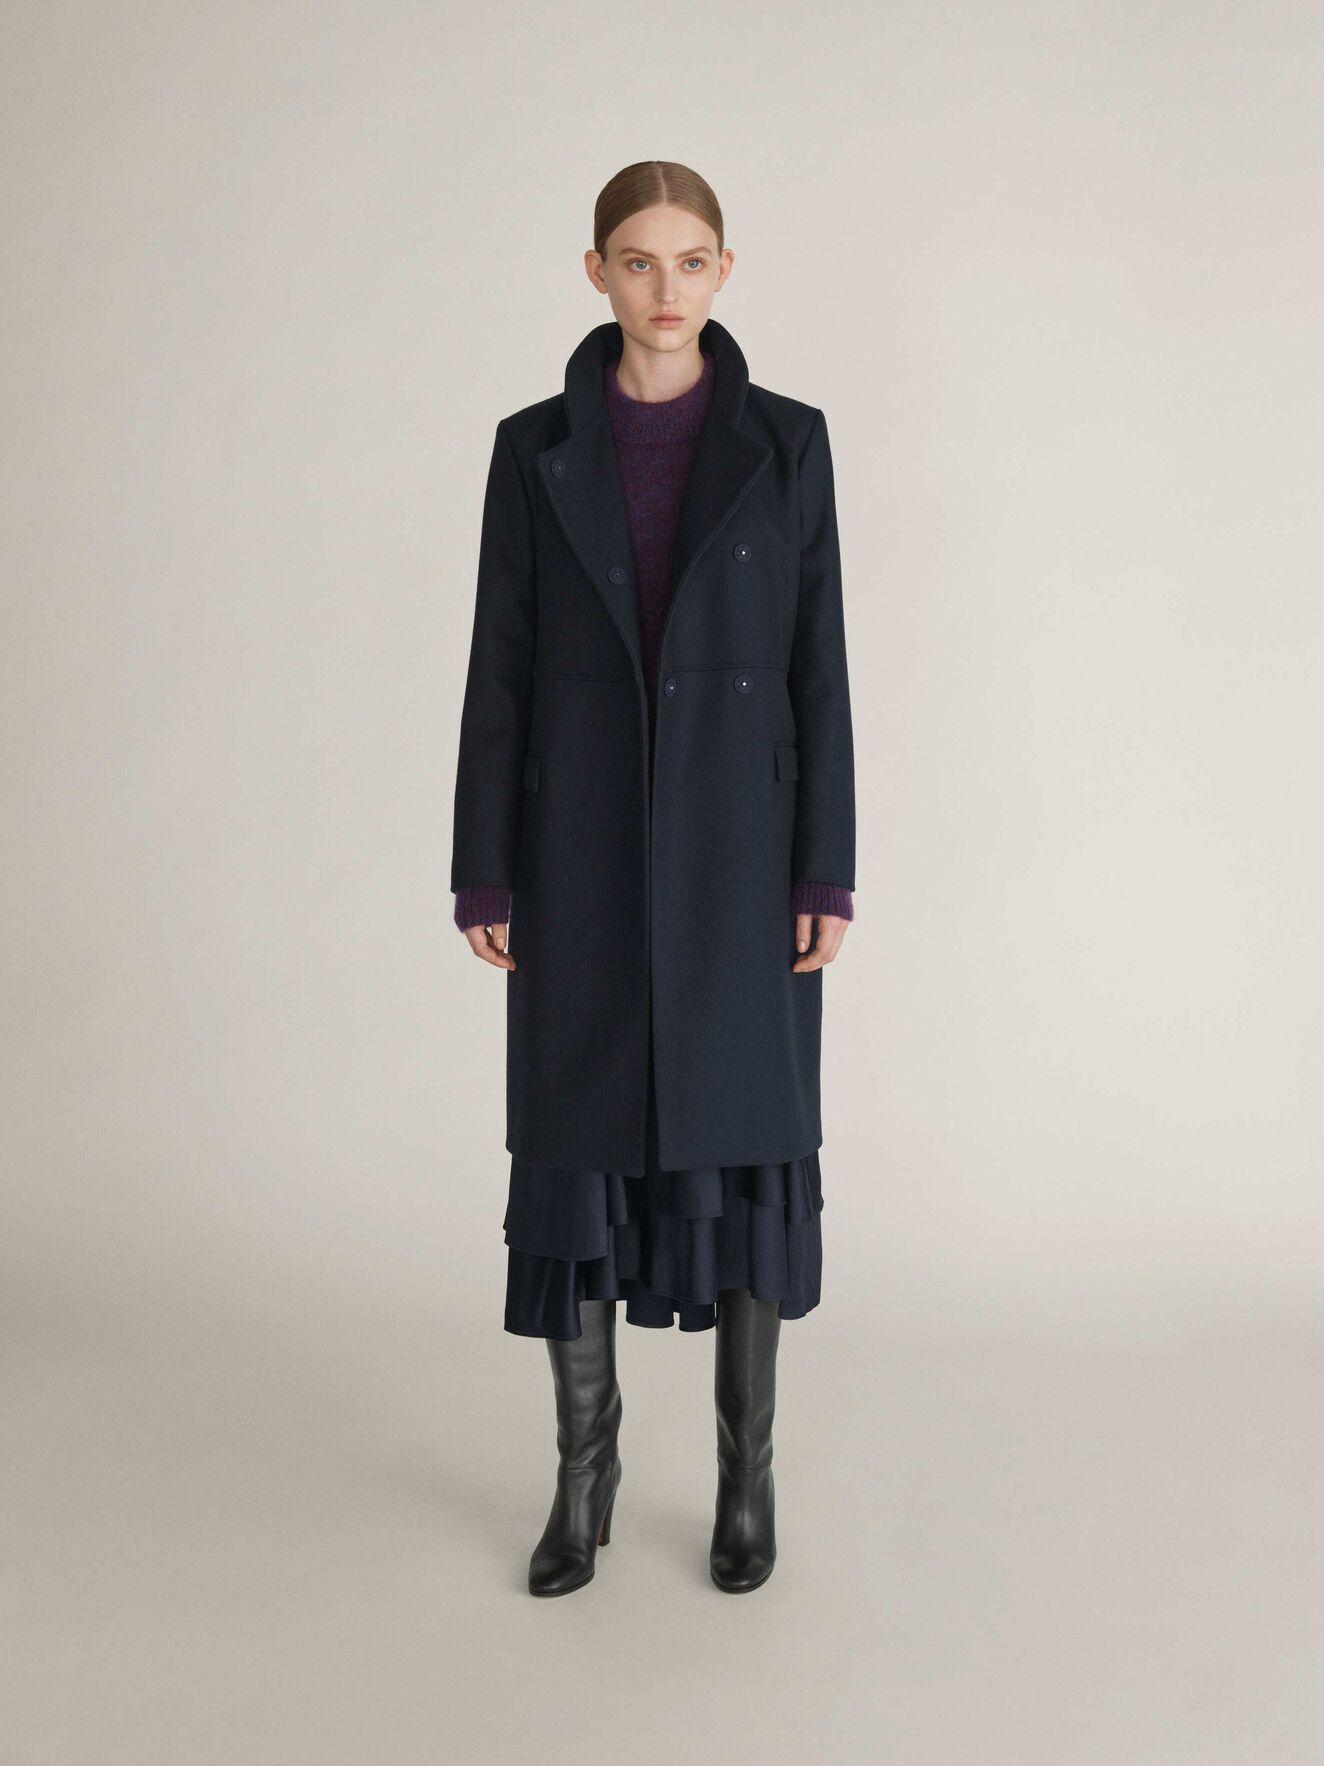 Knopp Coat in Light Ink from Tiger of Sweden